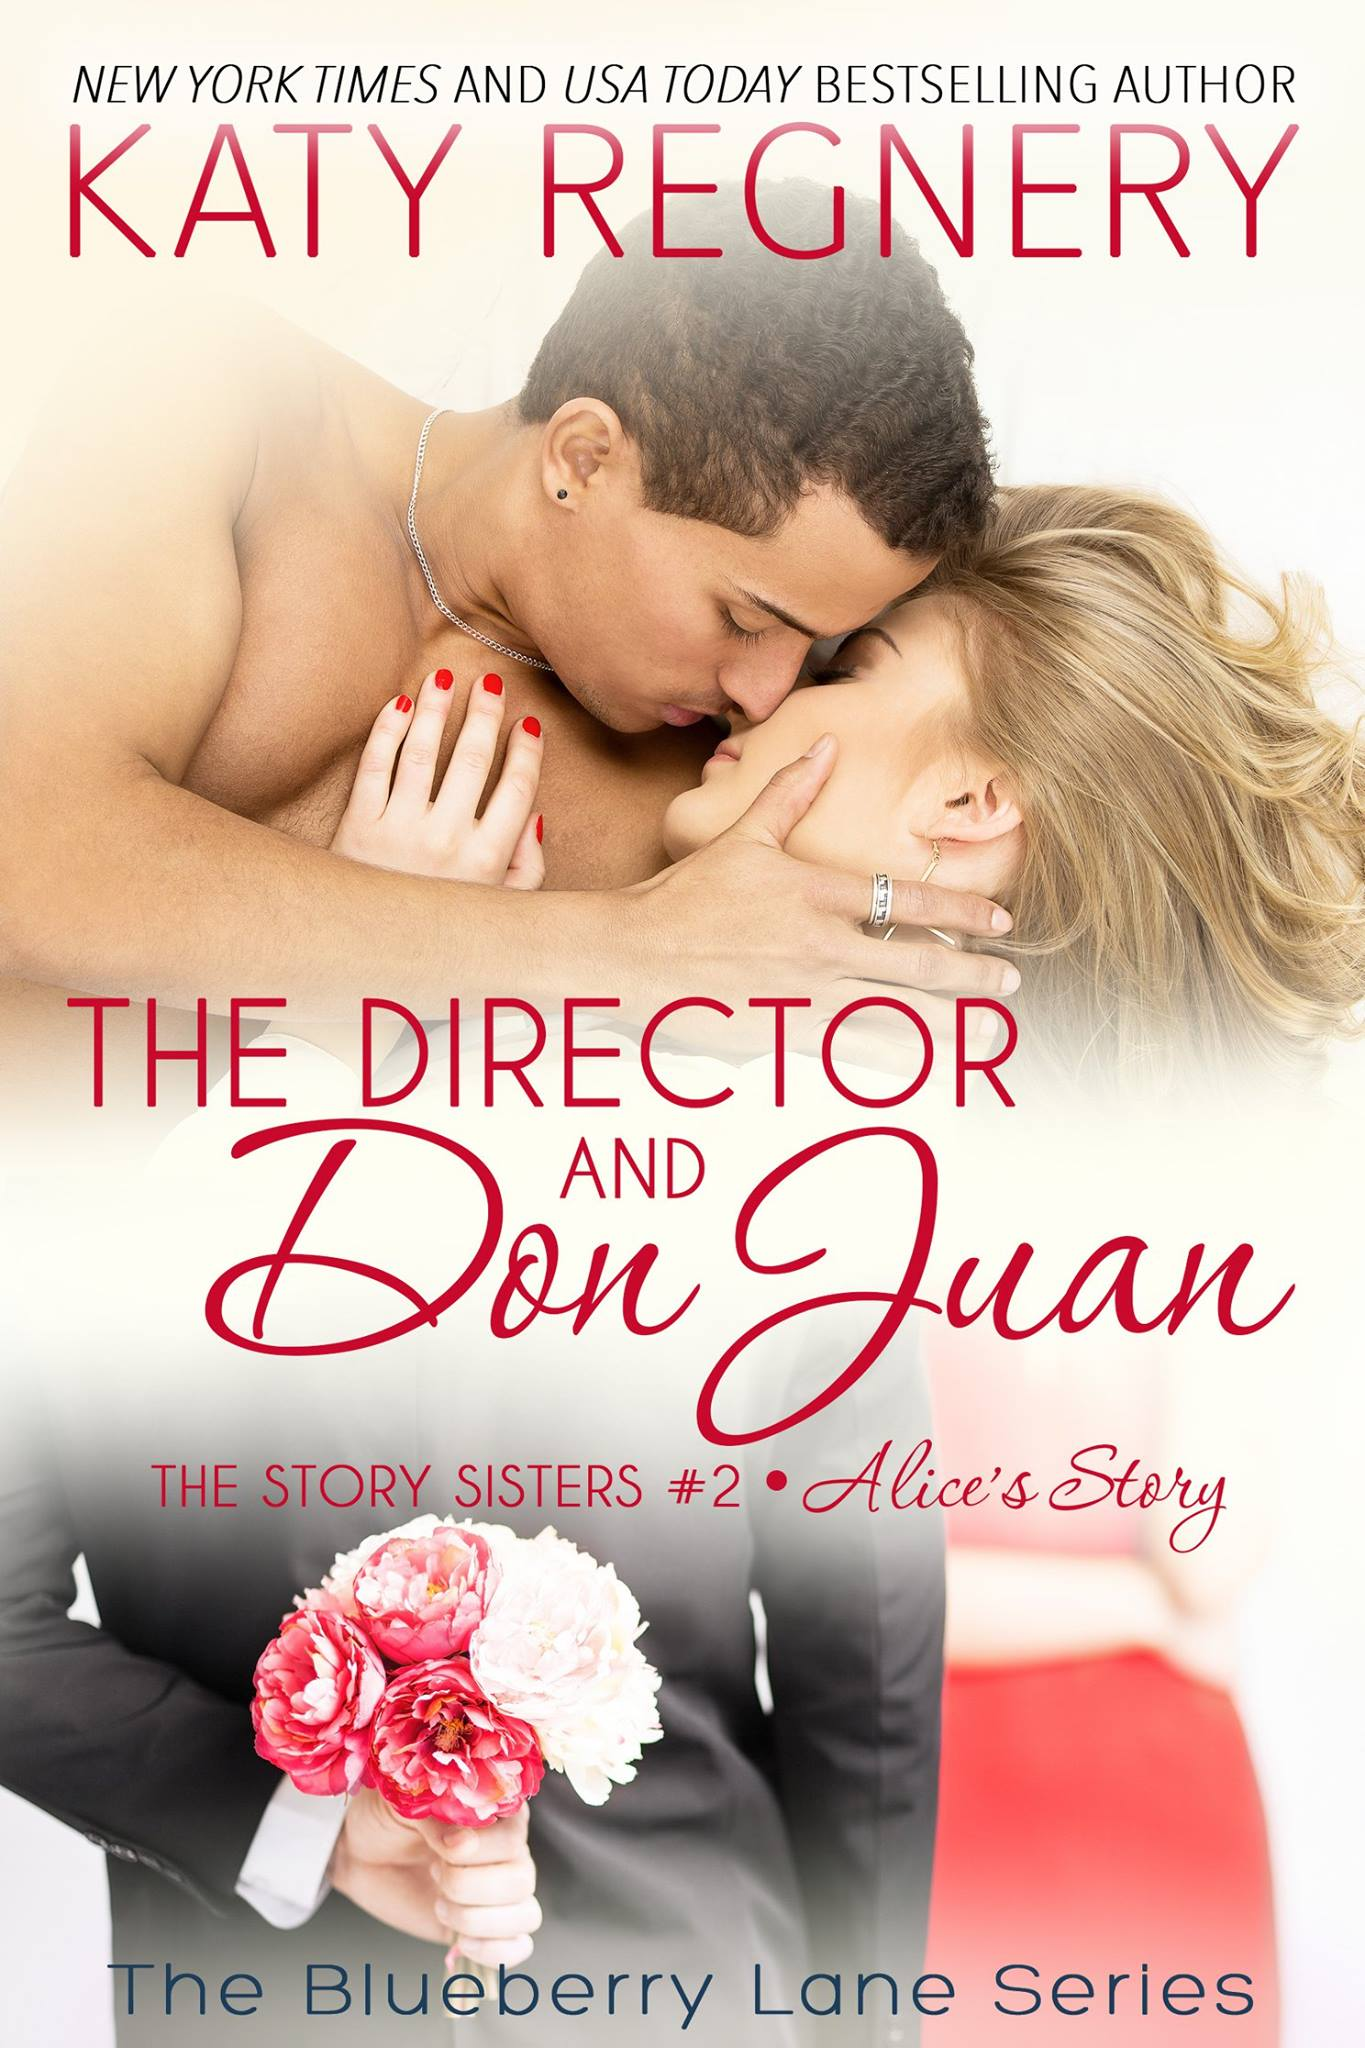 The Director and Don Juan: The Story Sisters #2 (The Blueberry Lane Series) by Katy Regnery